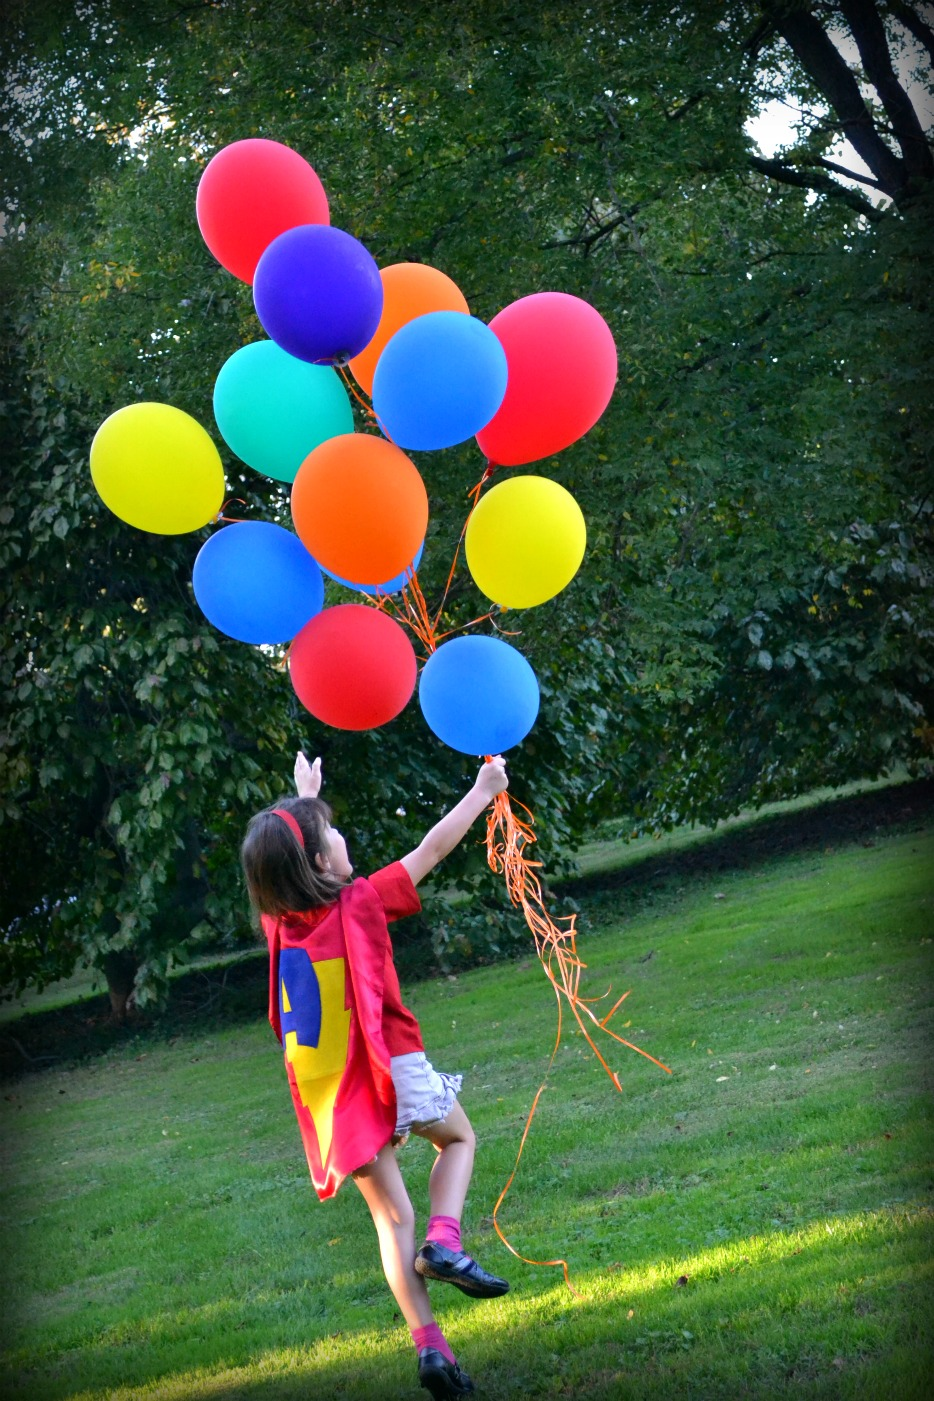 girl with a superhero cape on chasing ballons